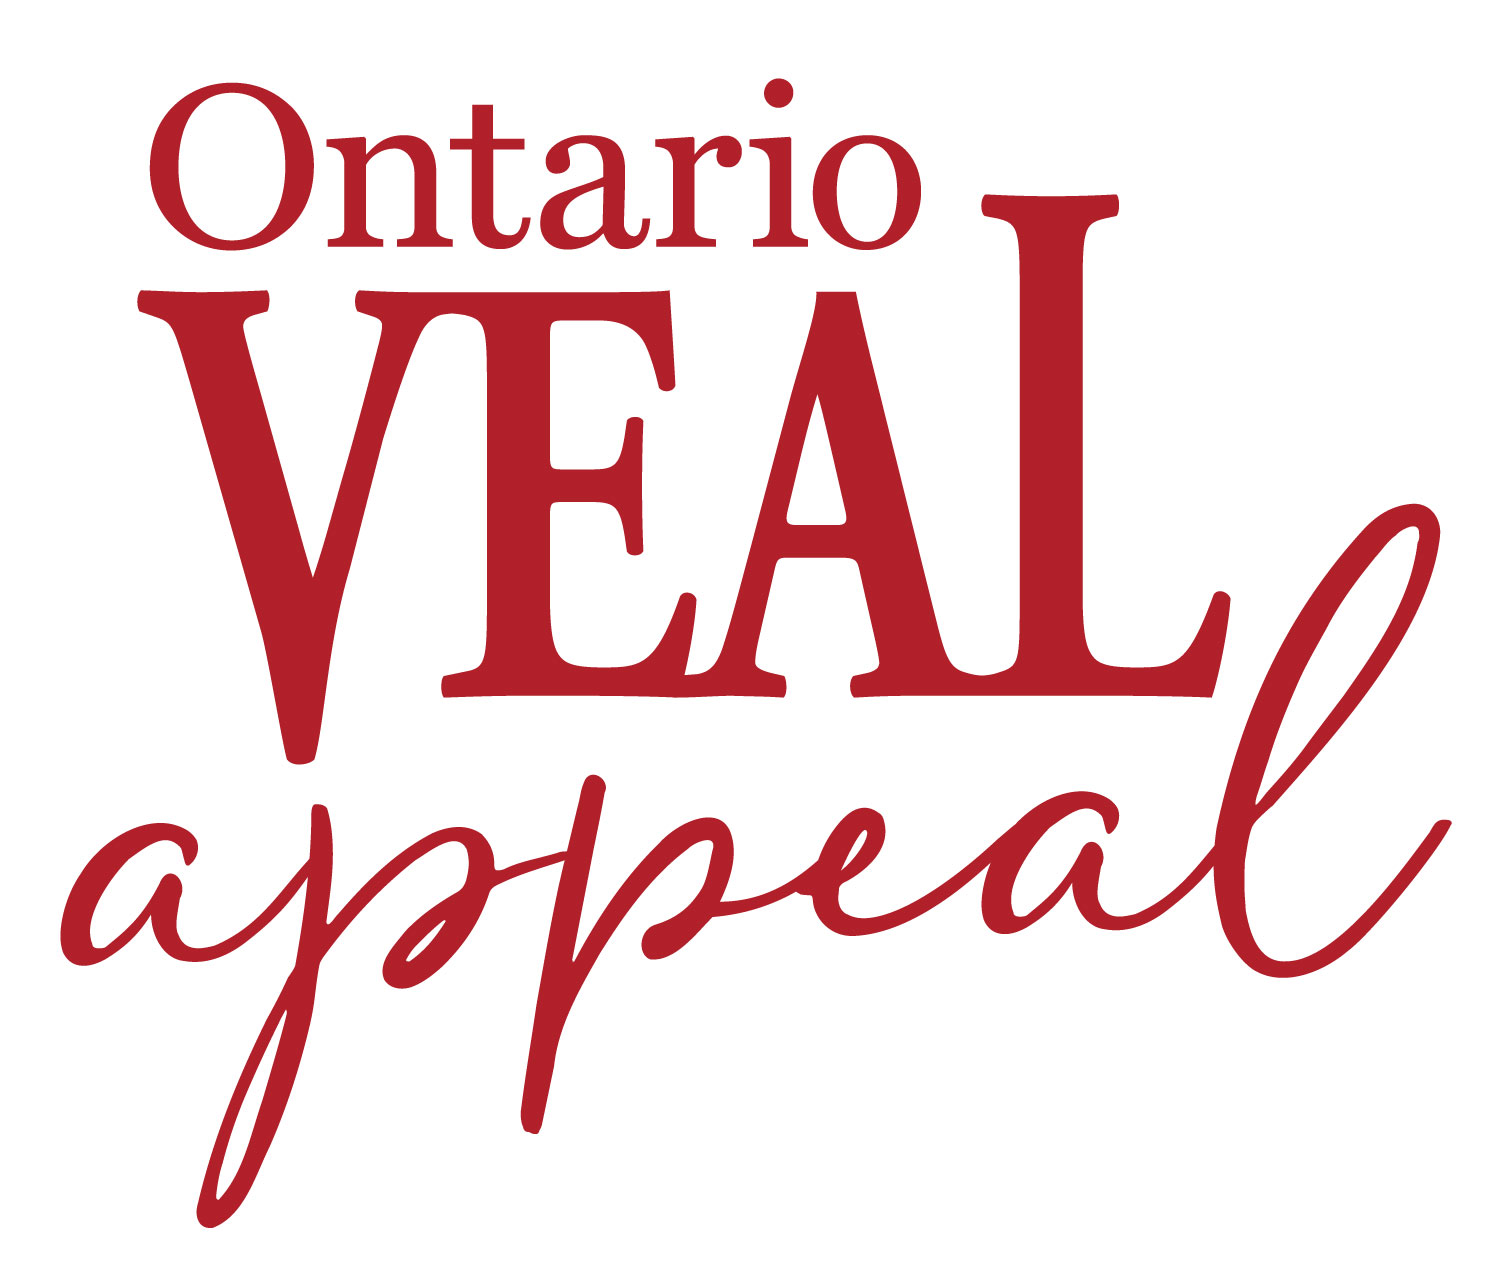 Ontario Veal Appeal